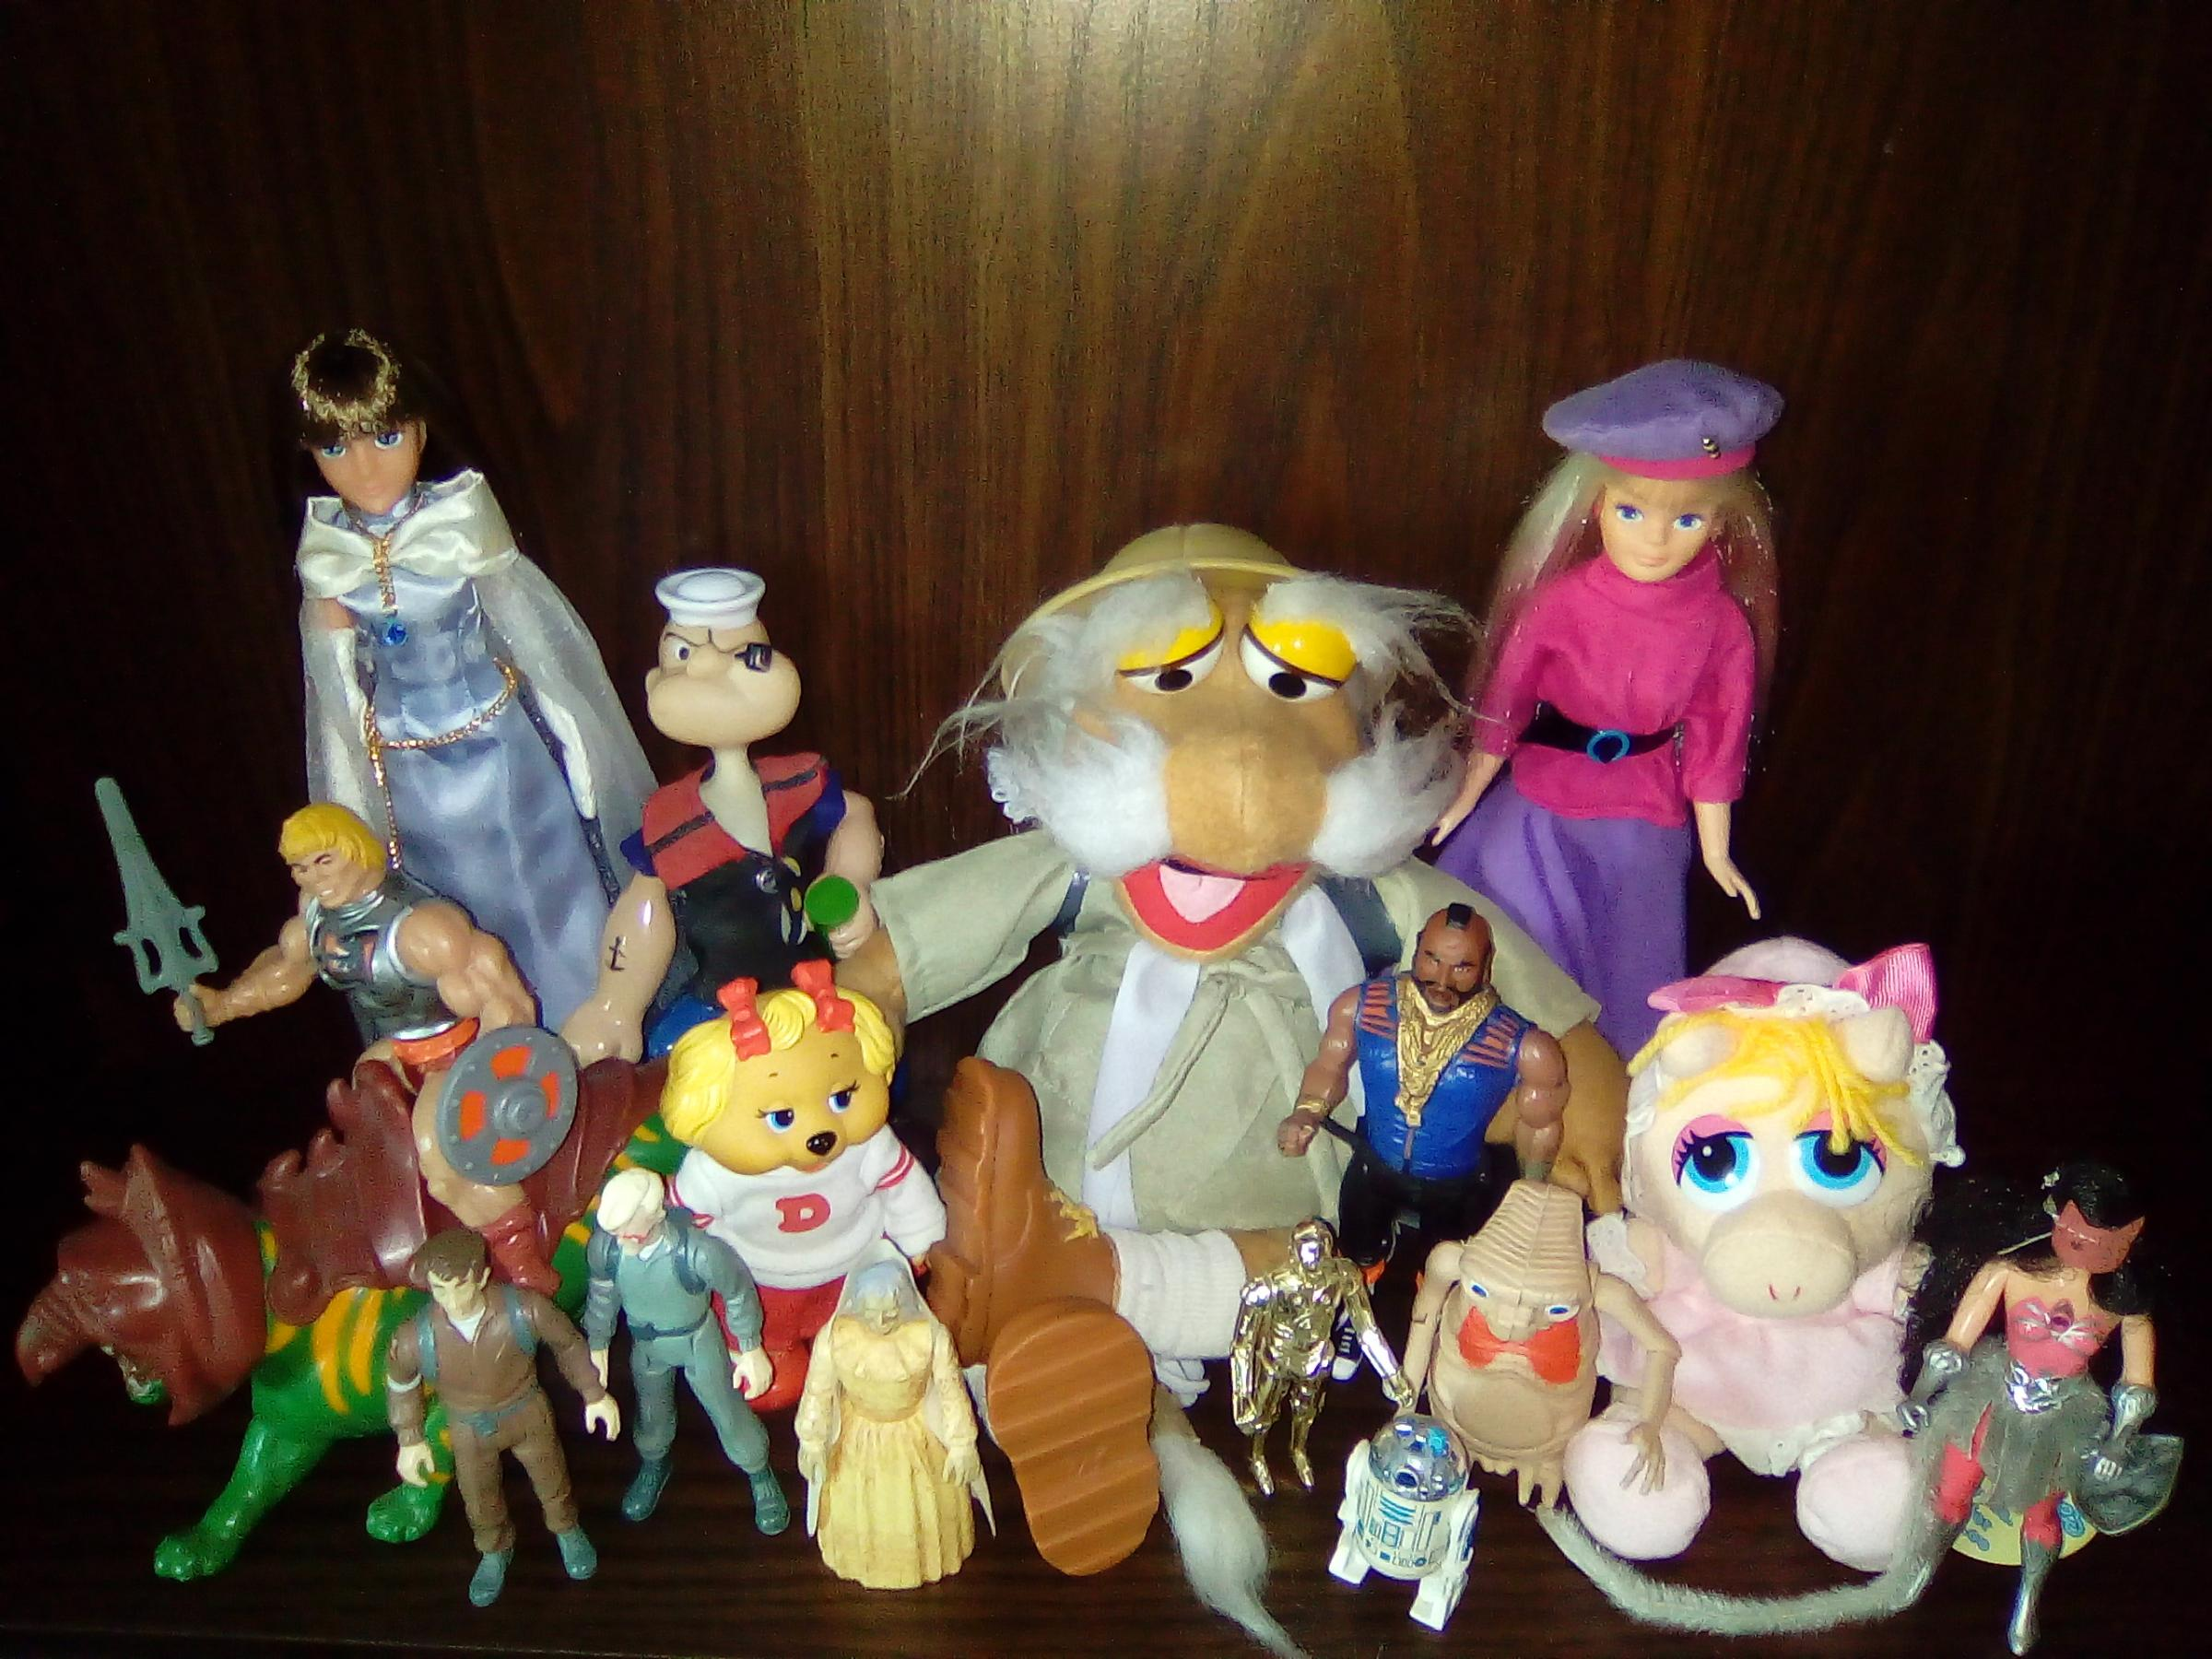 The 80s Toybox for 30 Somethings